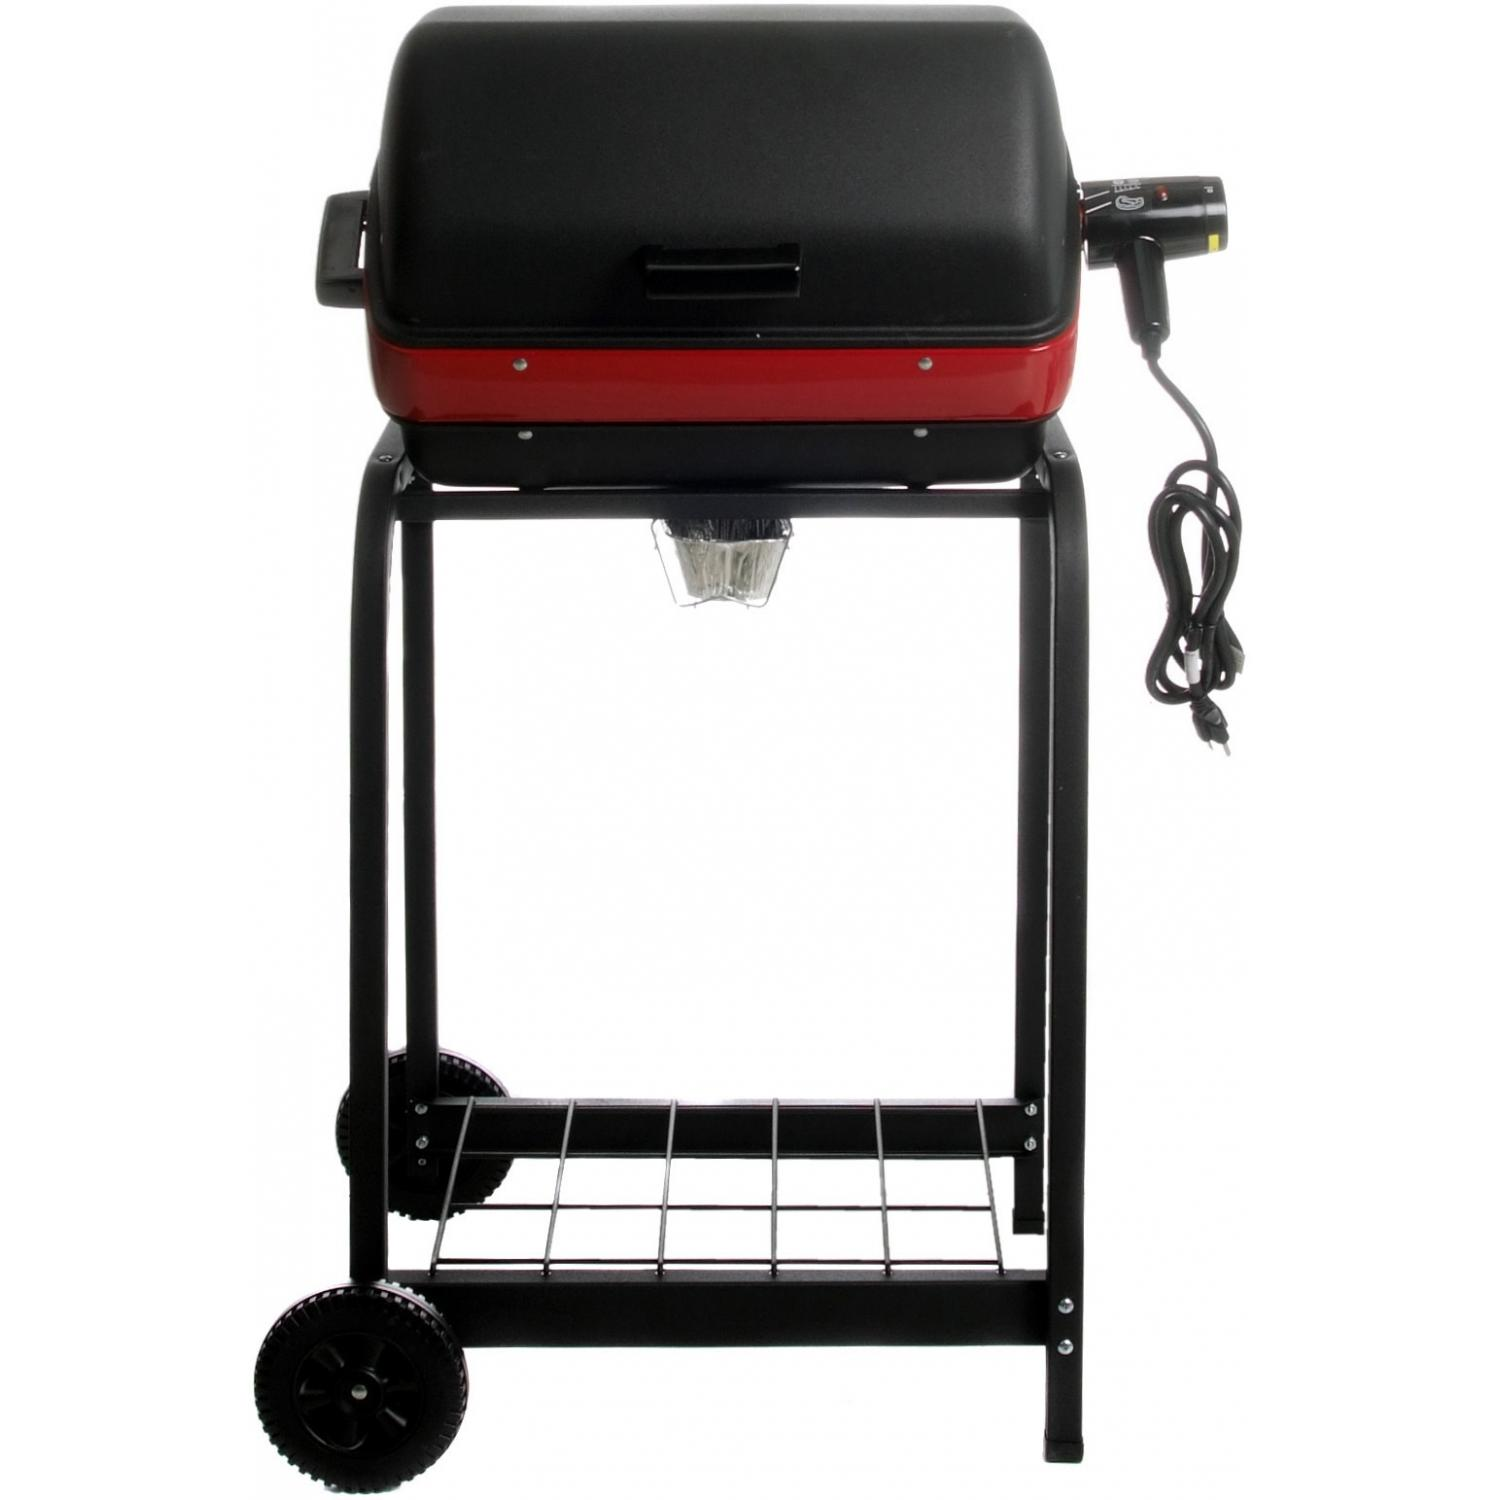 Meco Electric Grill On Cart - 9320 471